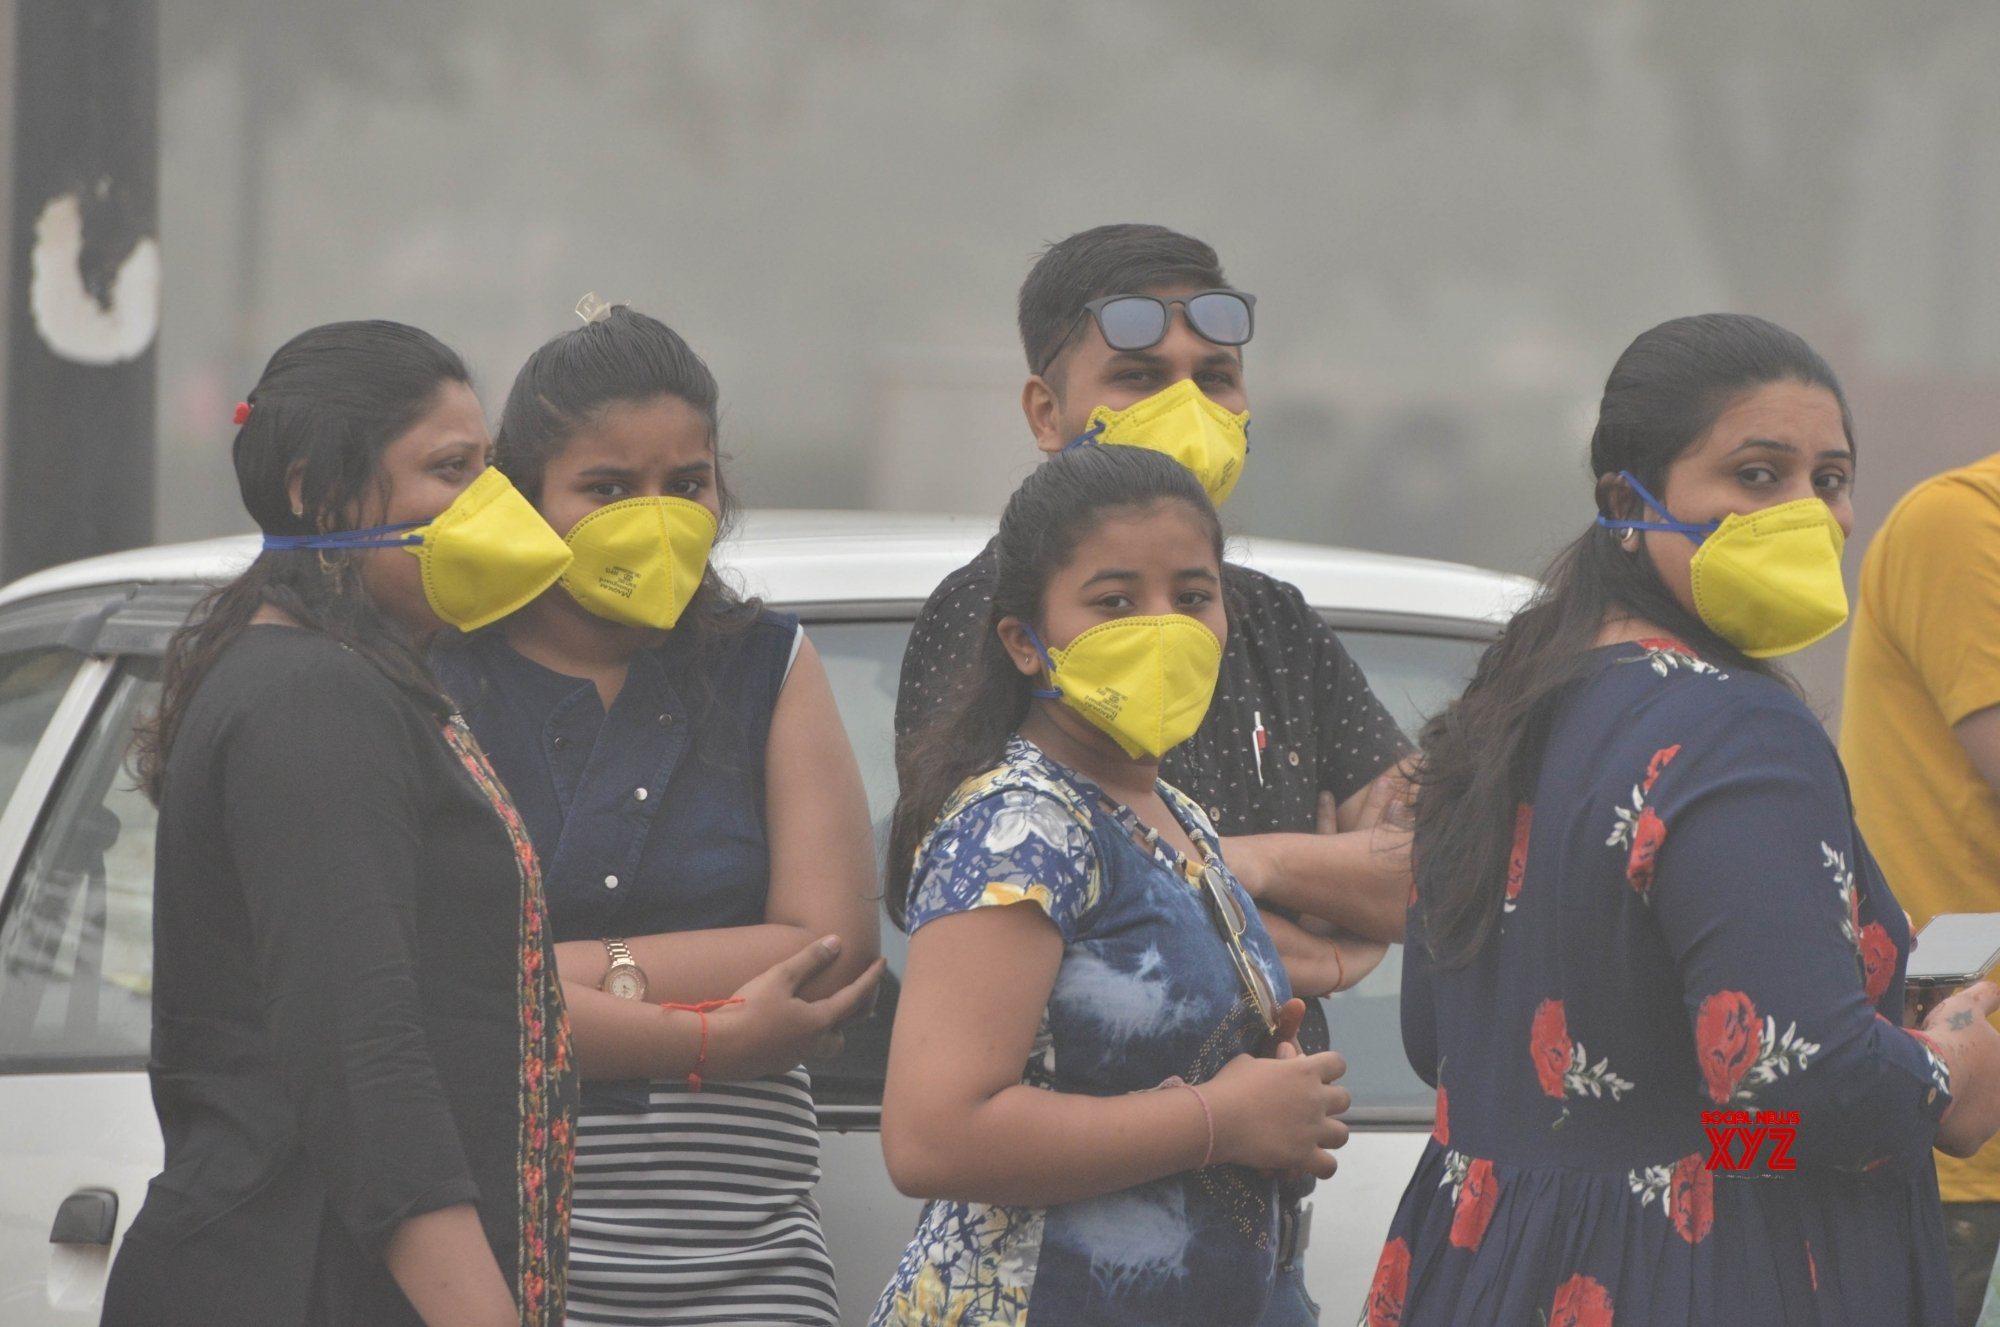 BJP MP wants 'gud' to boost immunity, fight pollution